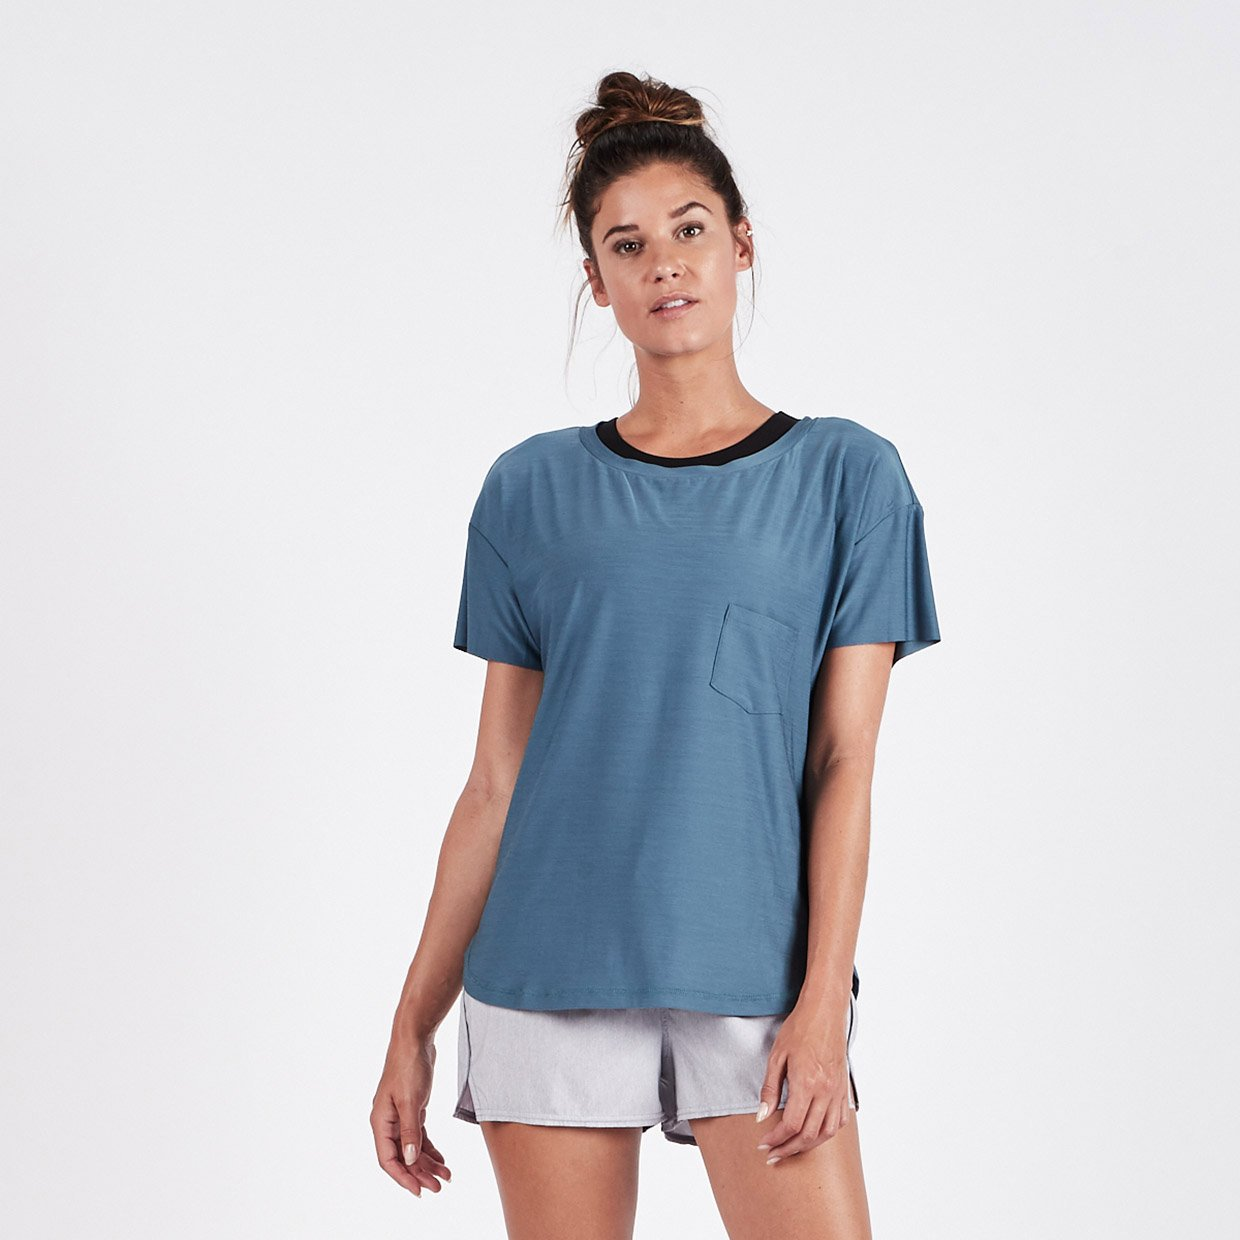 Lux Performance Tee - Tide Heather - Tide Heather 1